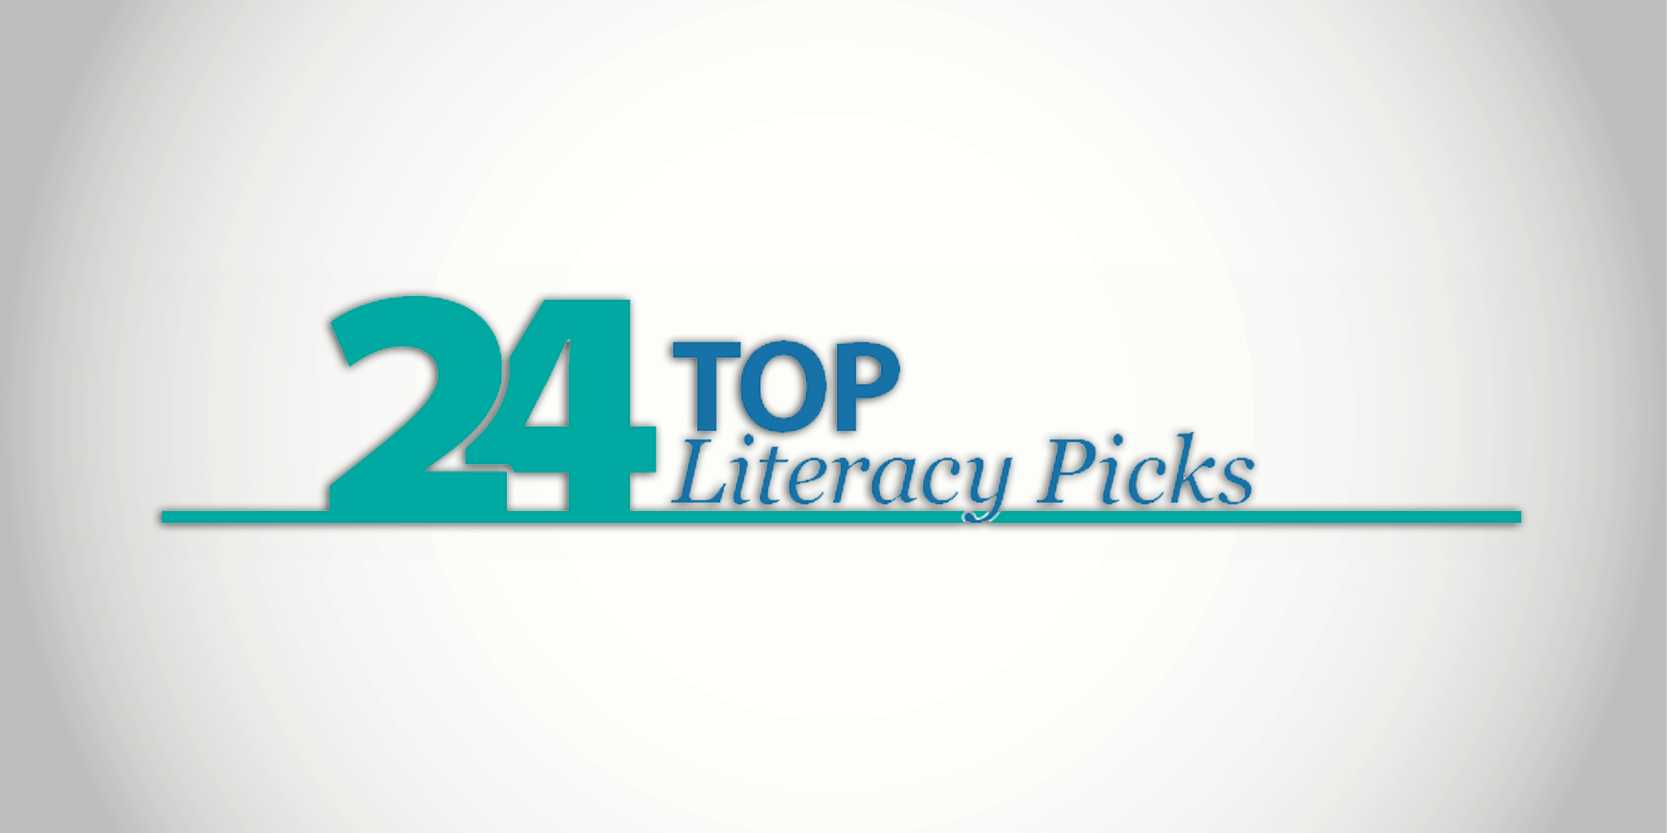 Discover 24 Top Literacy Picks